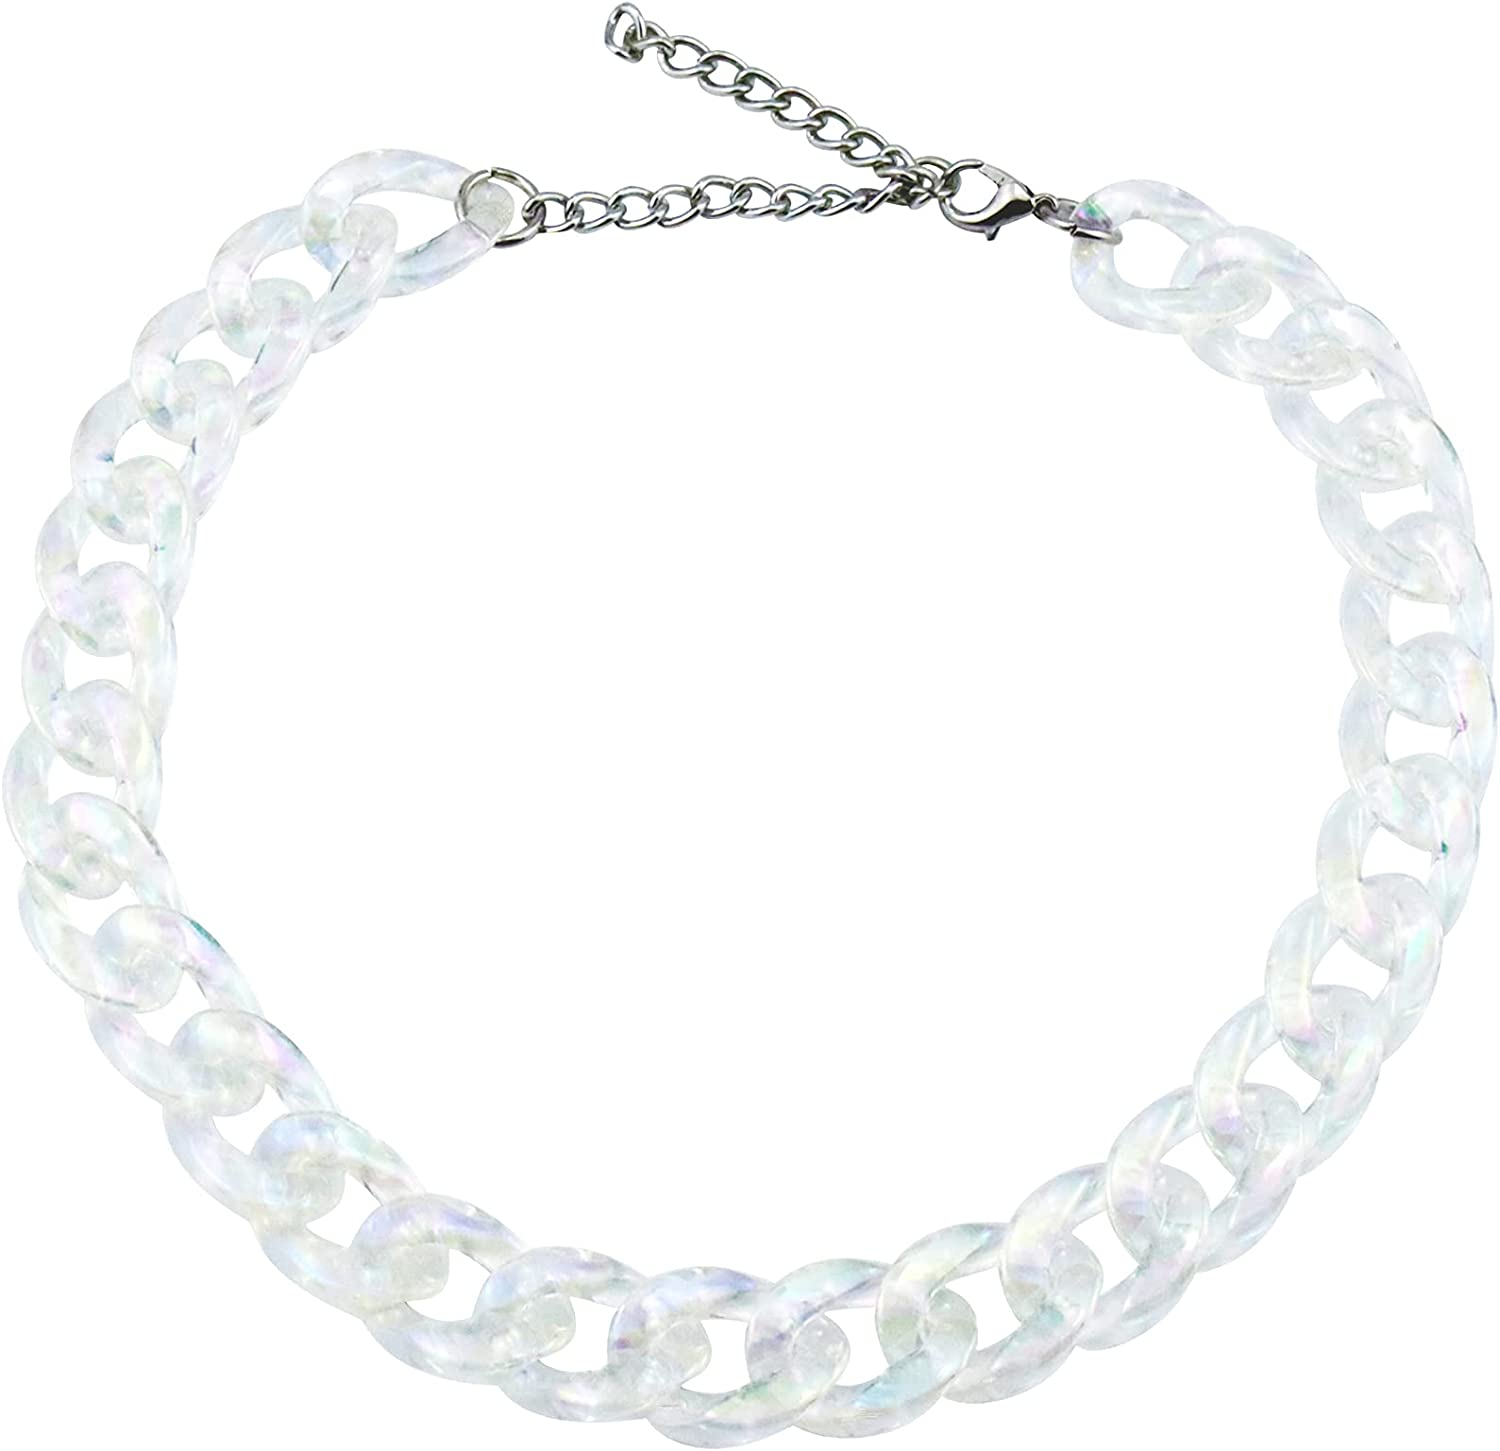 Riuziyi Punk Acrylic Cuban Link Chain Transparent AB Color Plastic Resin Choker Necklace Chunky Hip Hop Statement Neck Collar Jewelry Gift for Women Teens Girls